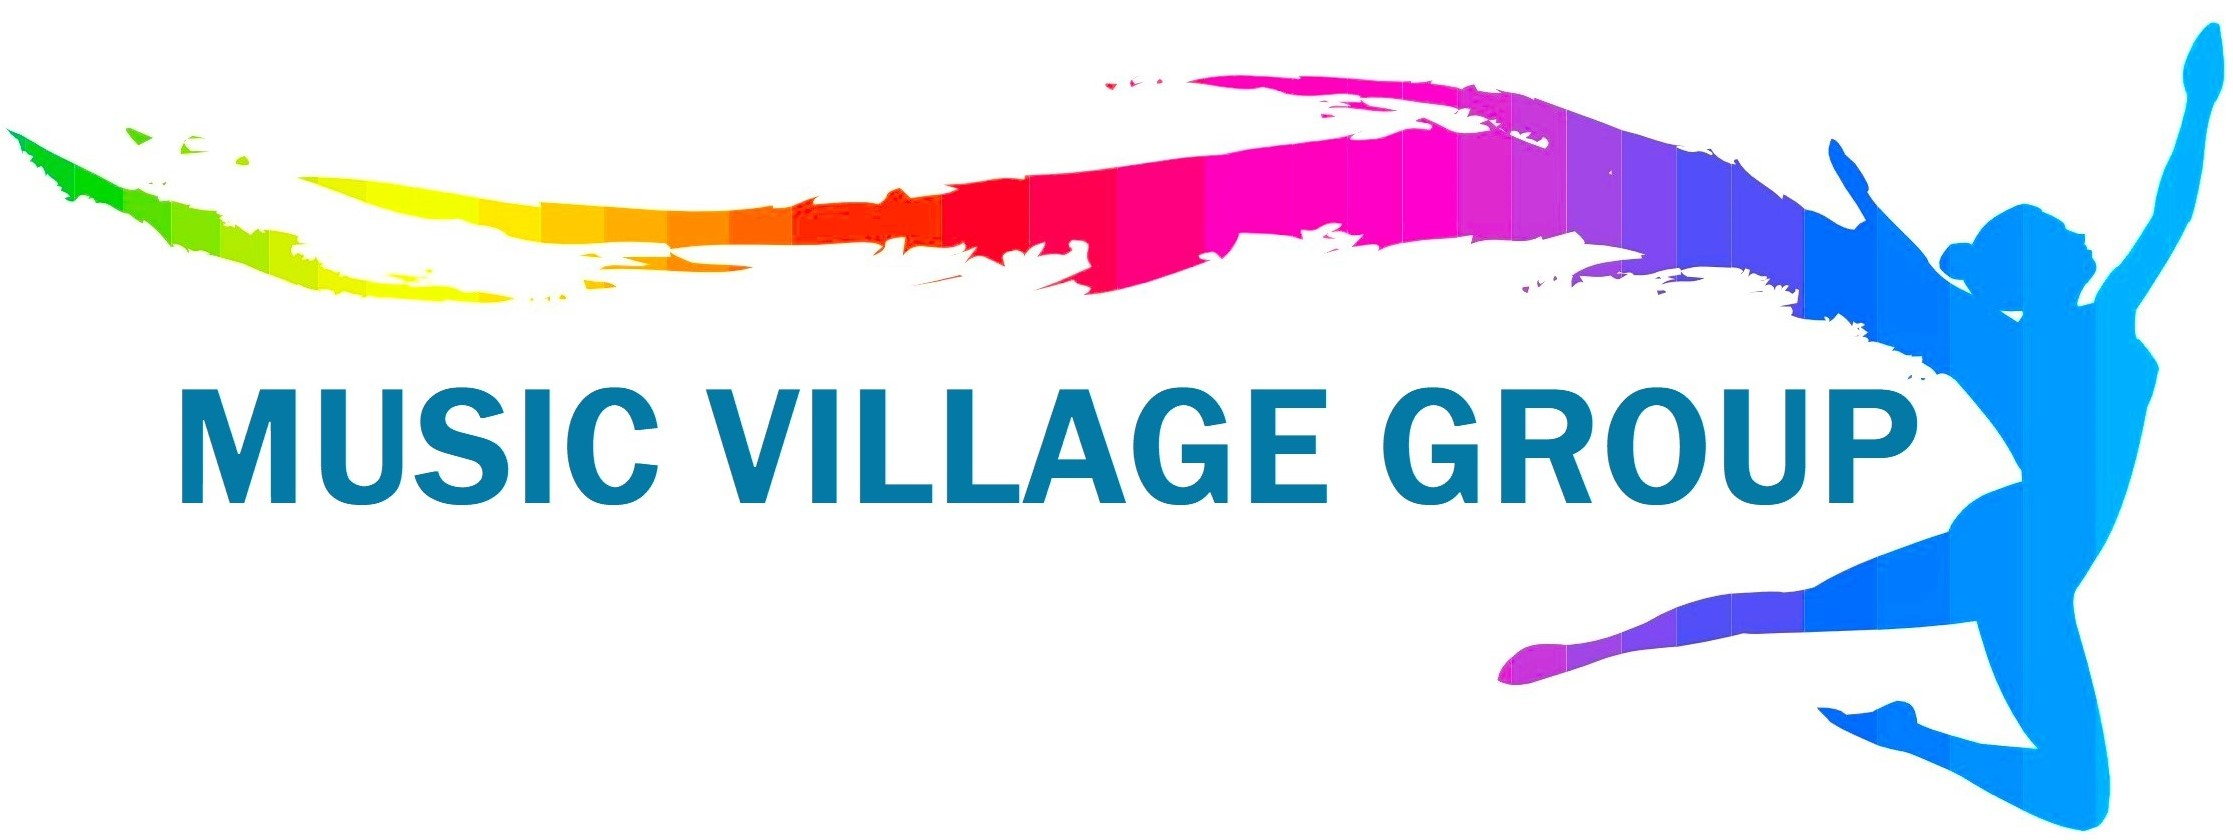 MUSIC VILLAGE GROUP